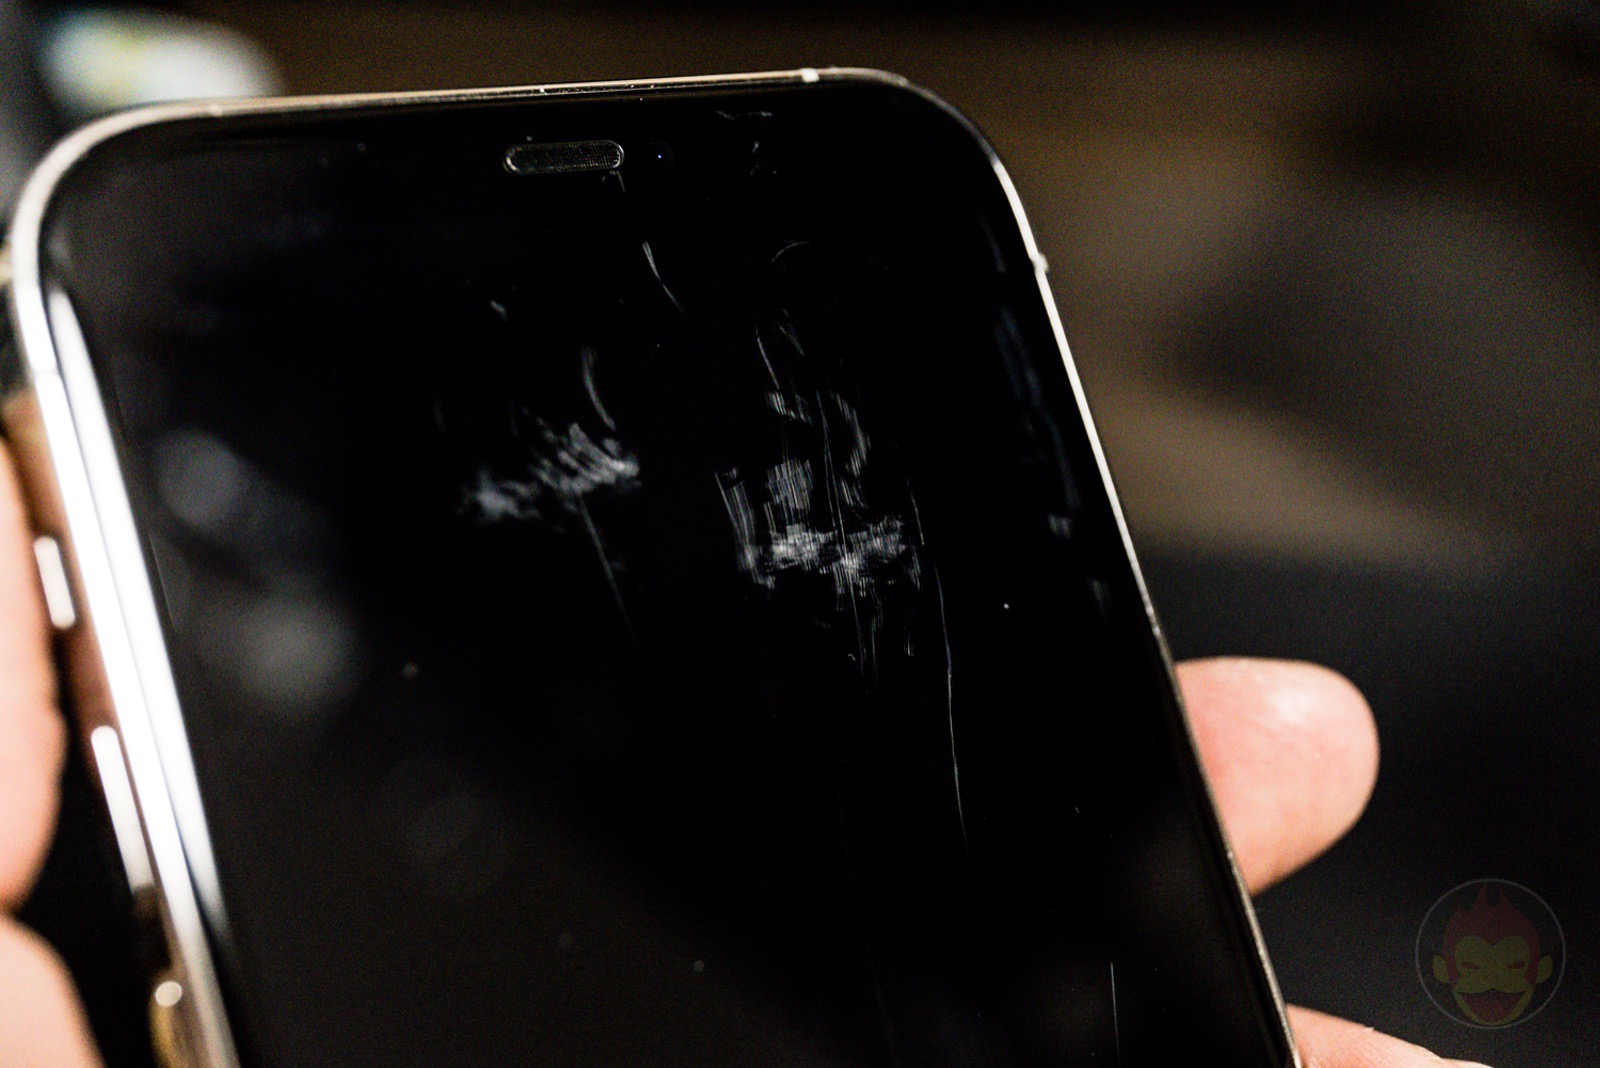 What happens when you hold two iphones in same pocket 02